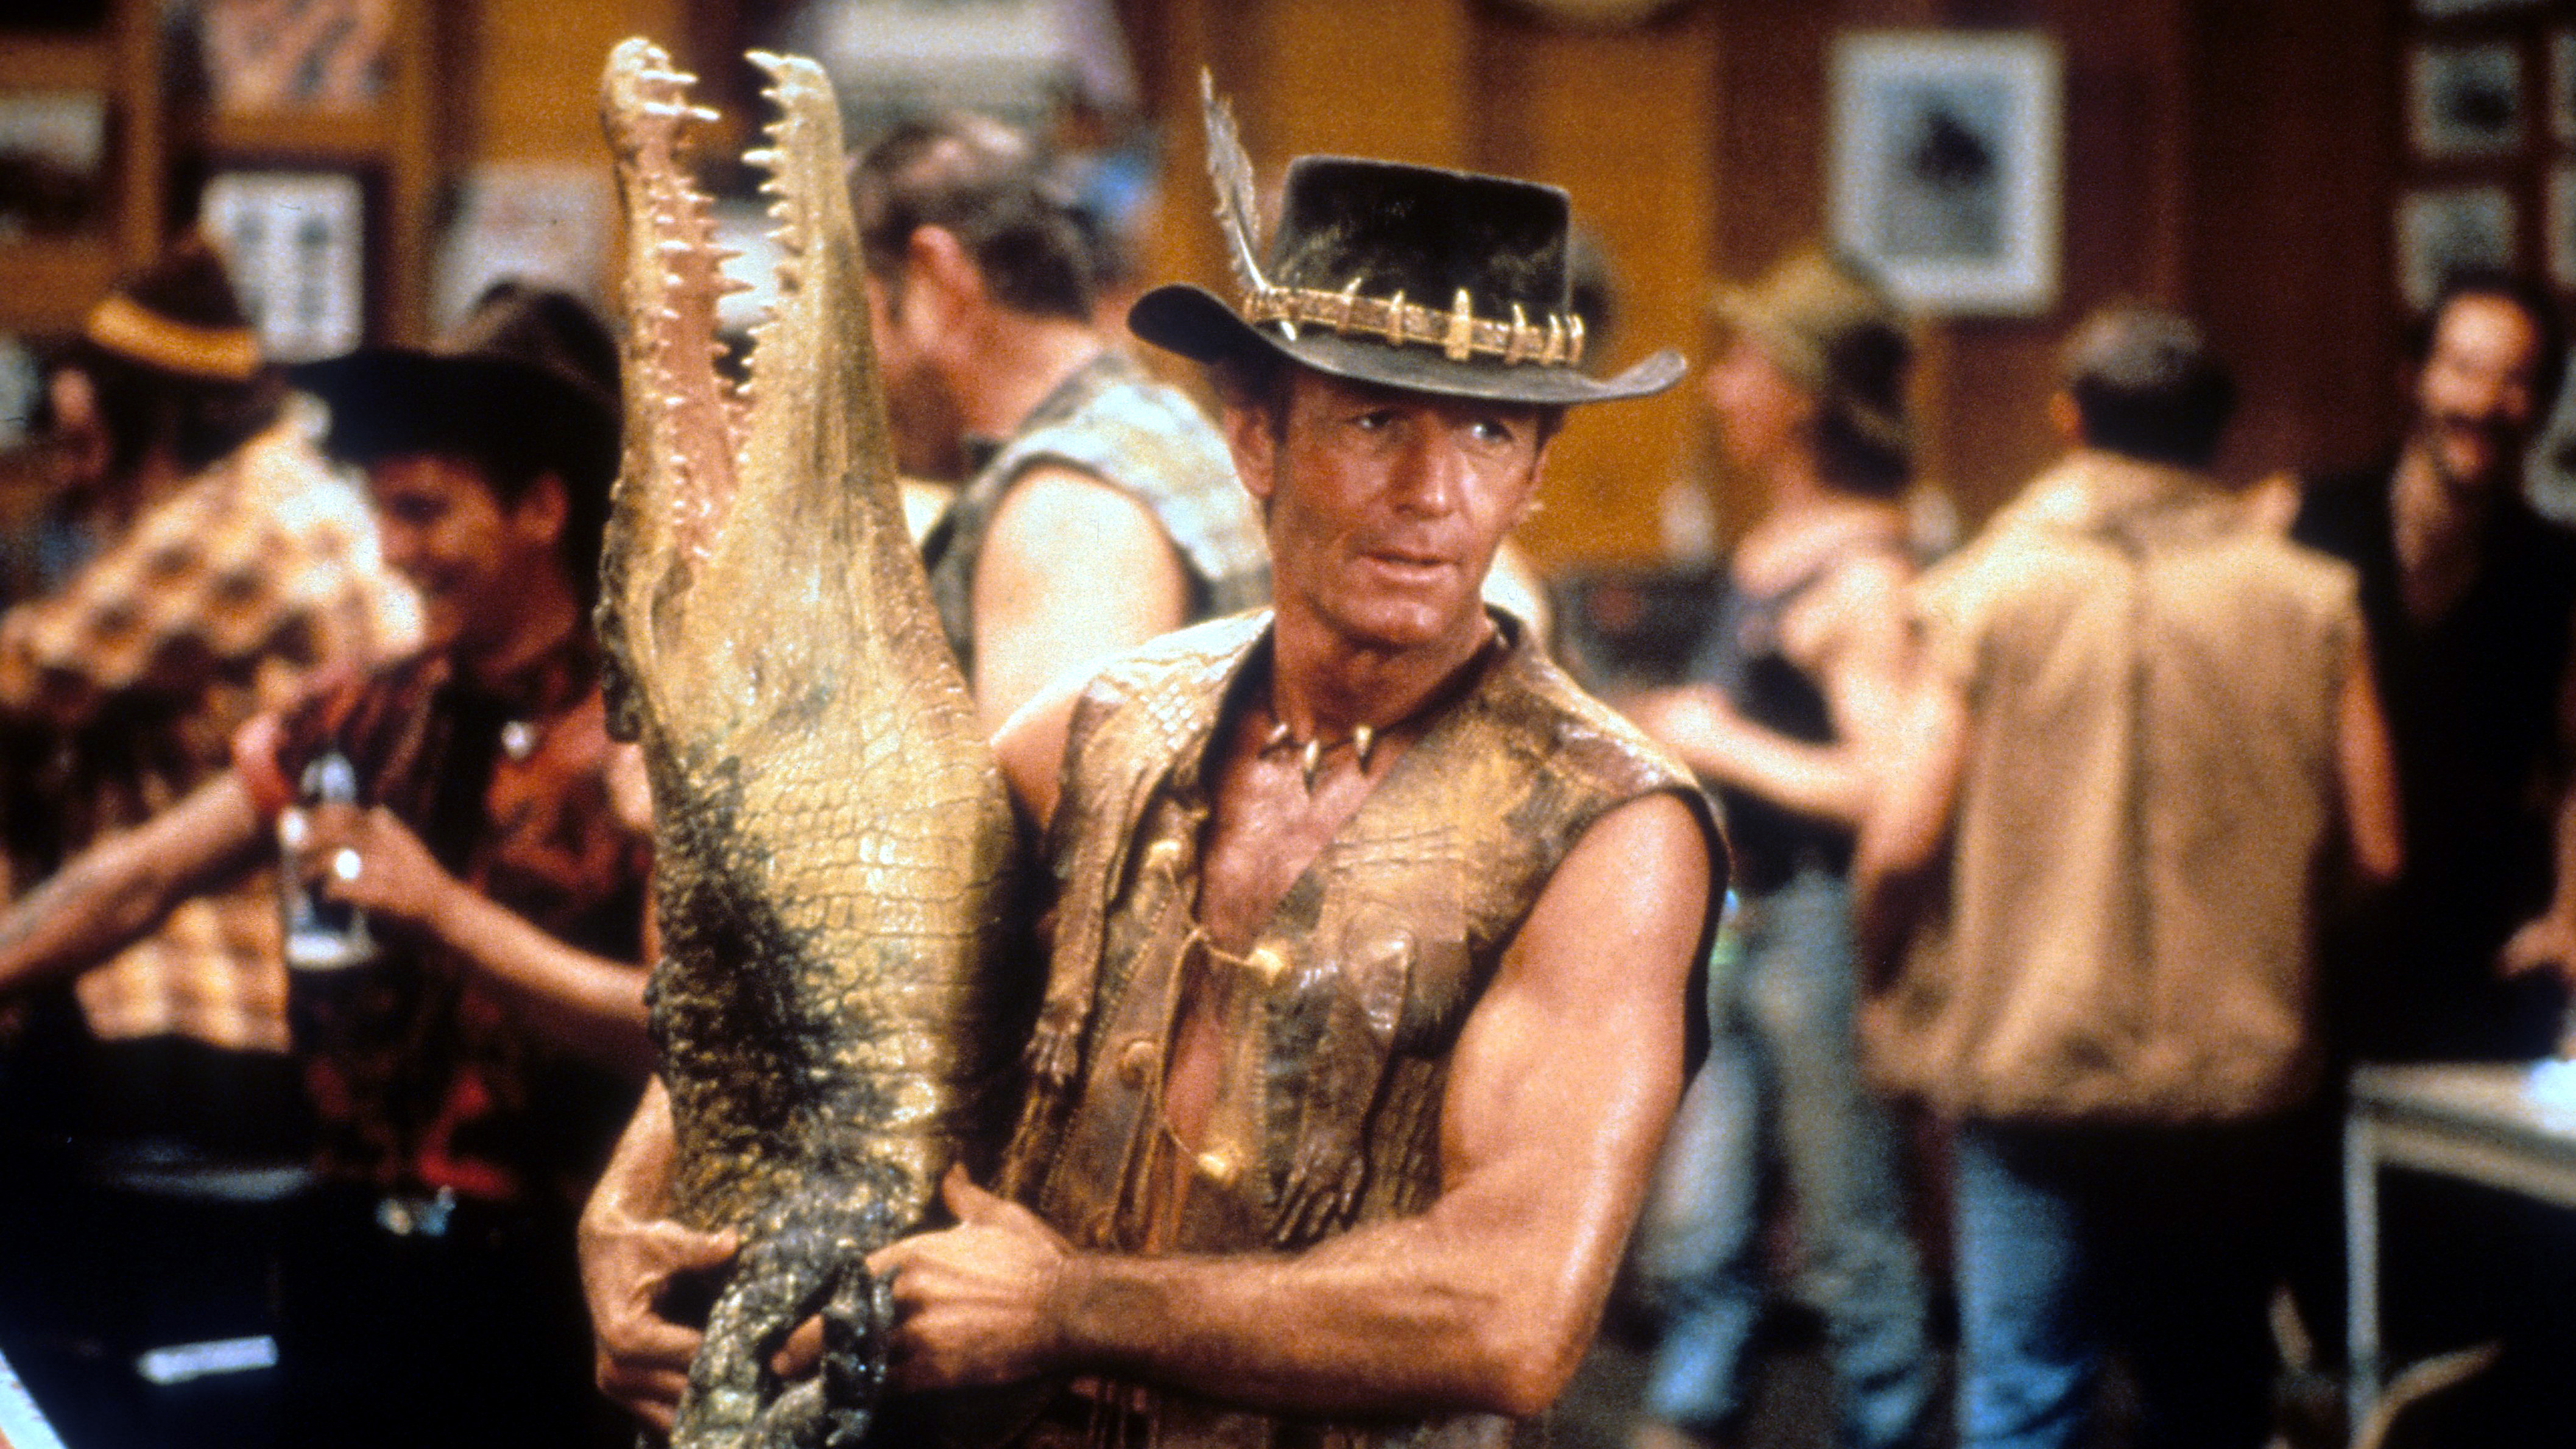 'Crocodile Dundee' actor Paul Hogan reflects on his divorces: 'I'm not a great husband'